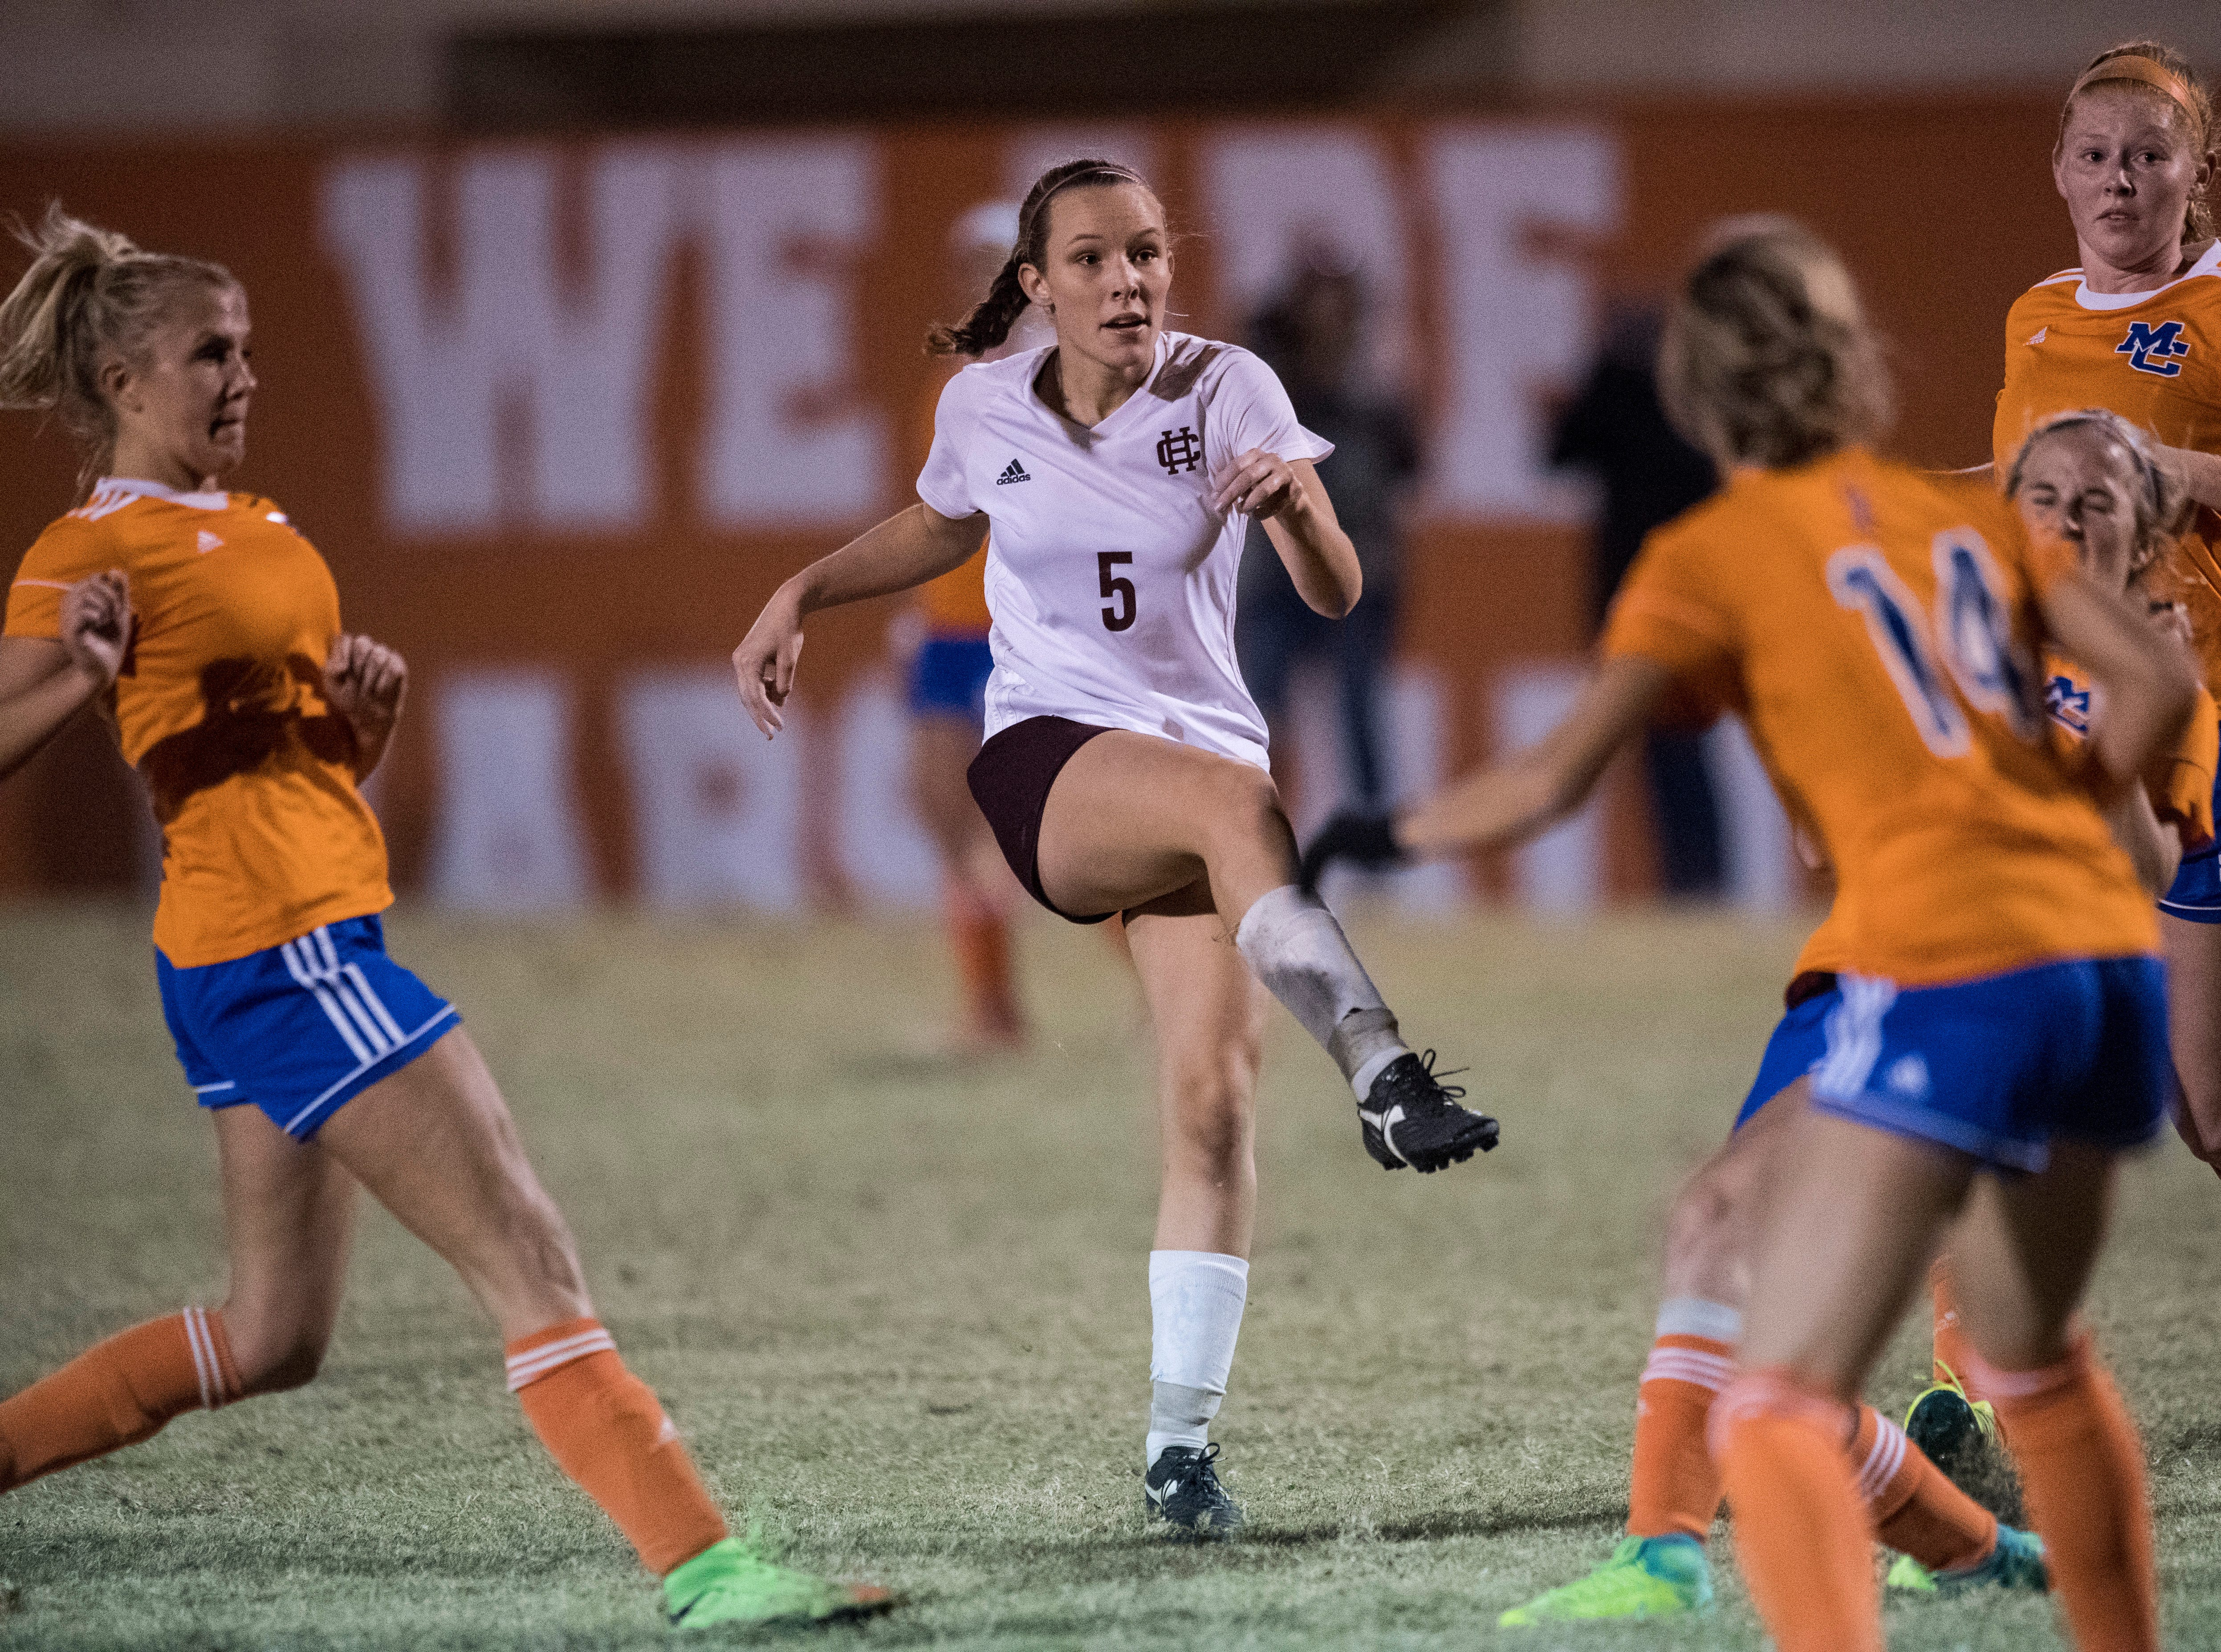 Henderson's Maddie Griggs (5) kicks the ball towards the goal during the first round of the KHSAA state tournament at Marshall County High School Monday, Oct. 23, 2018.